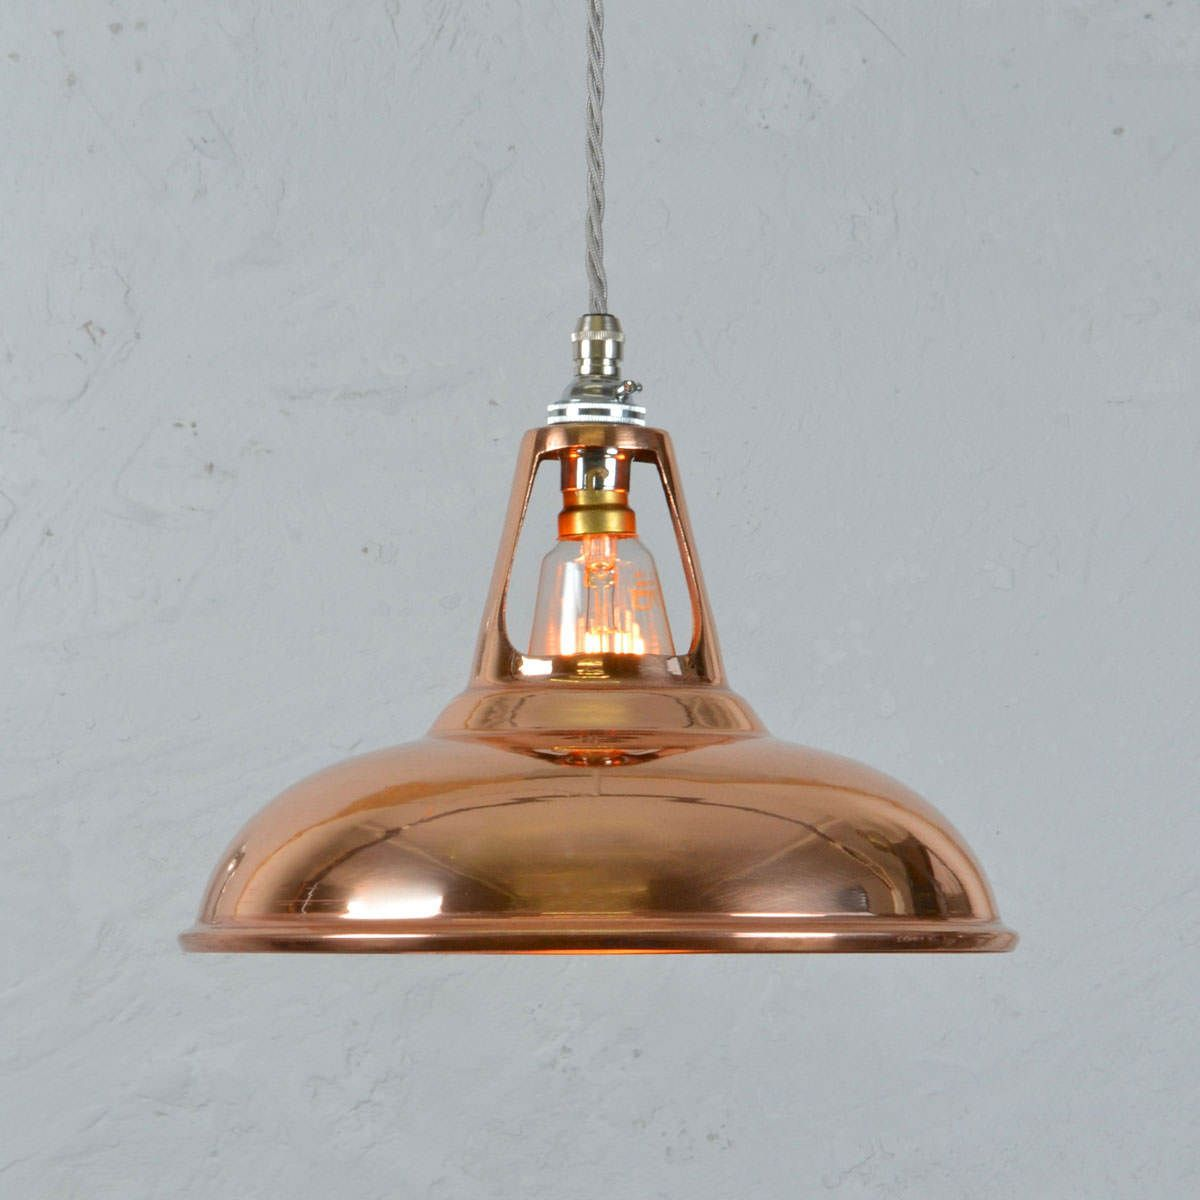 copper pendant lighting. Coolicon Industrial Copper Pendant Light Lighting